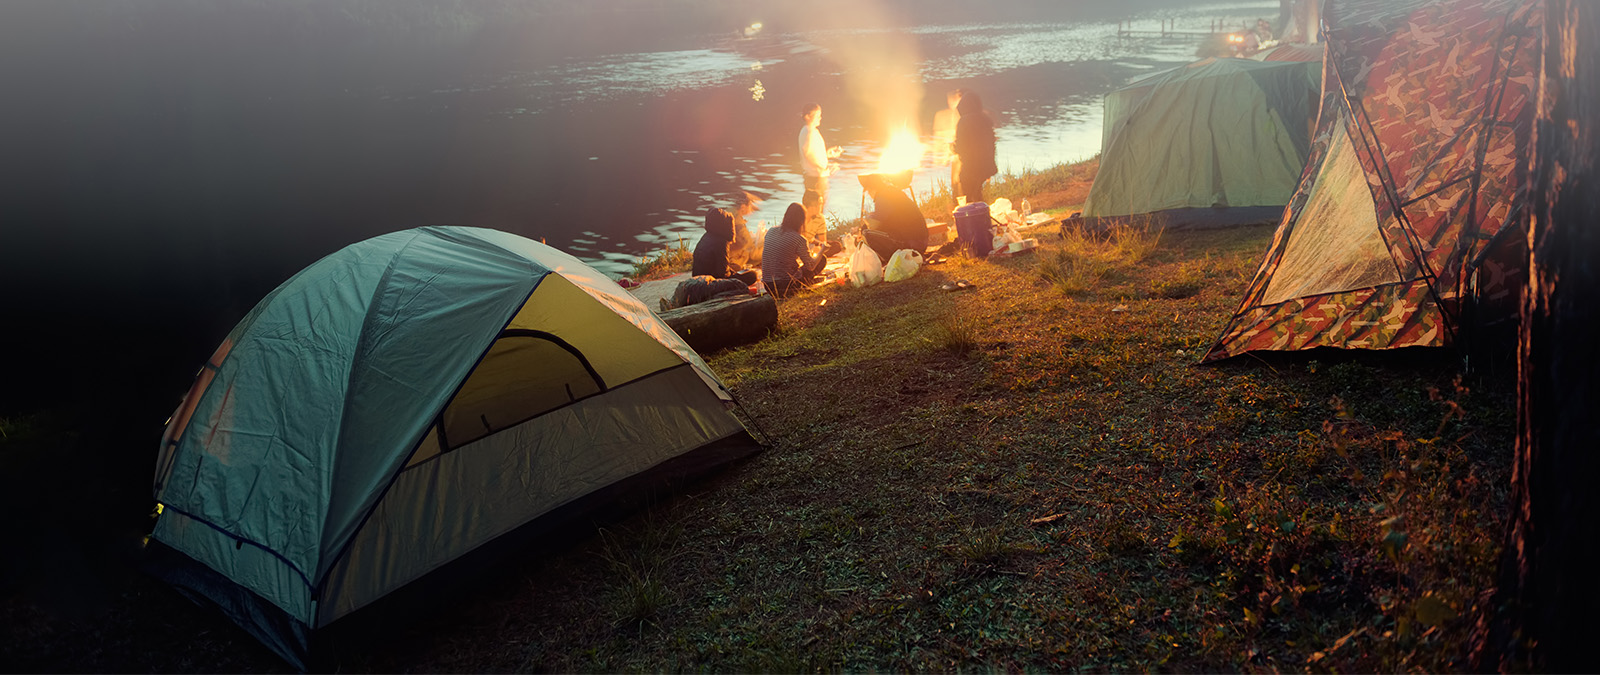 pelican consumer blog what to bring to camping